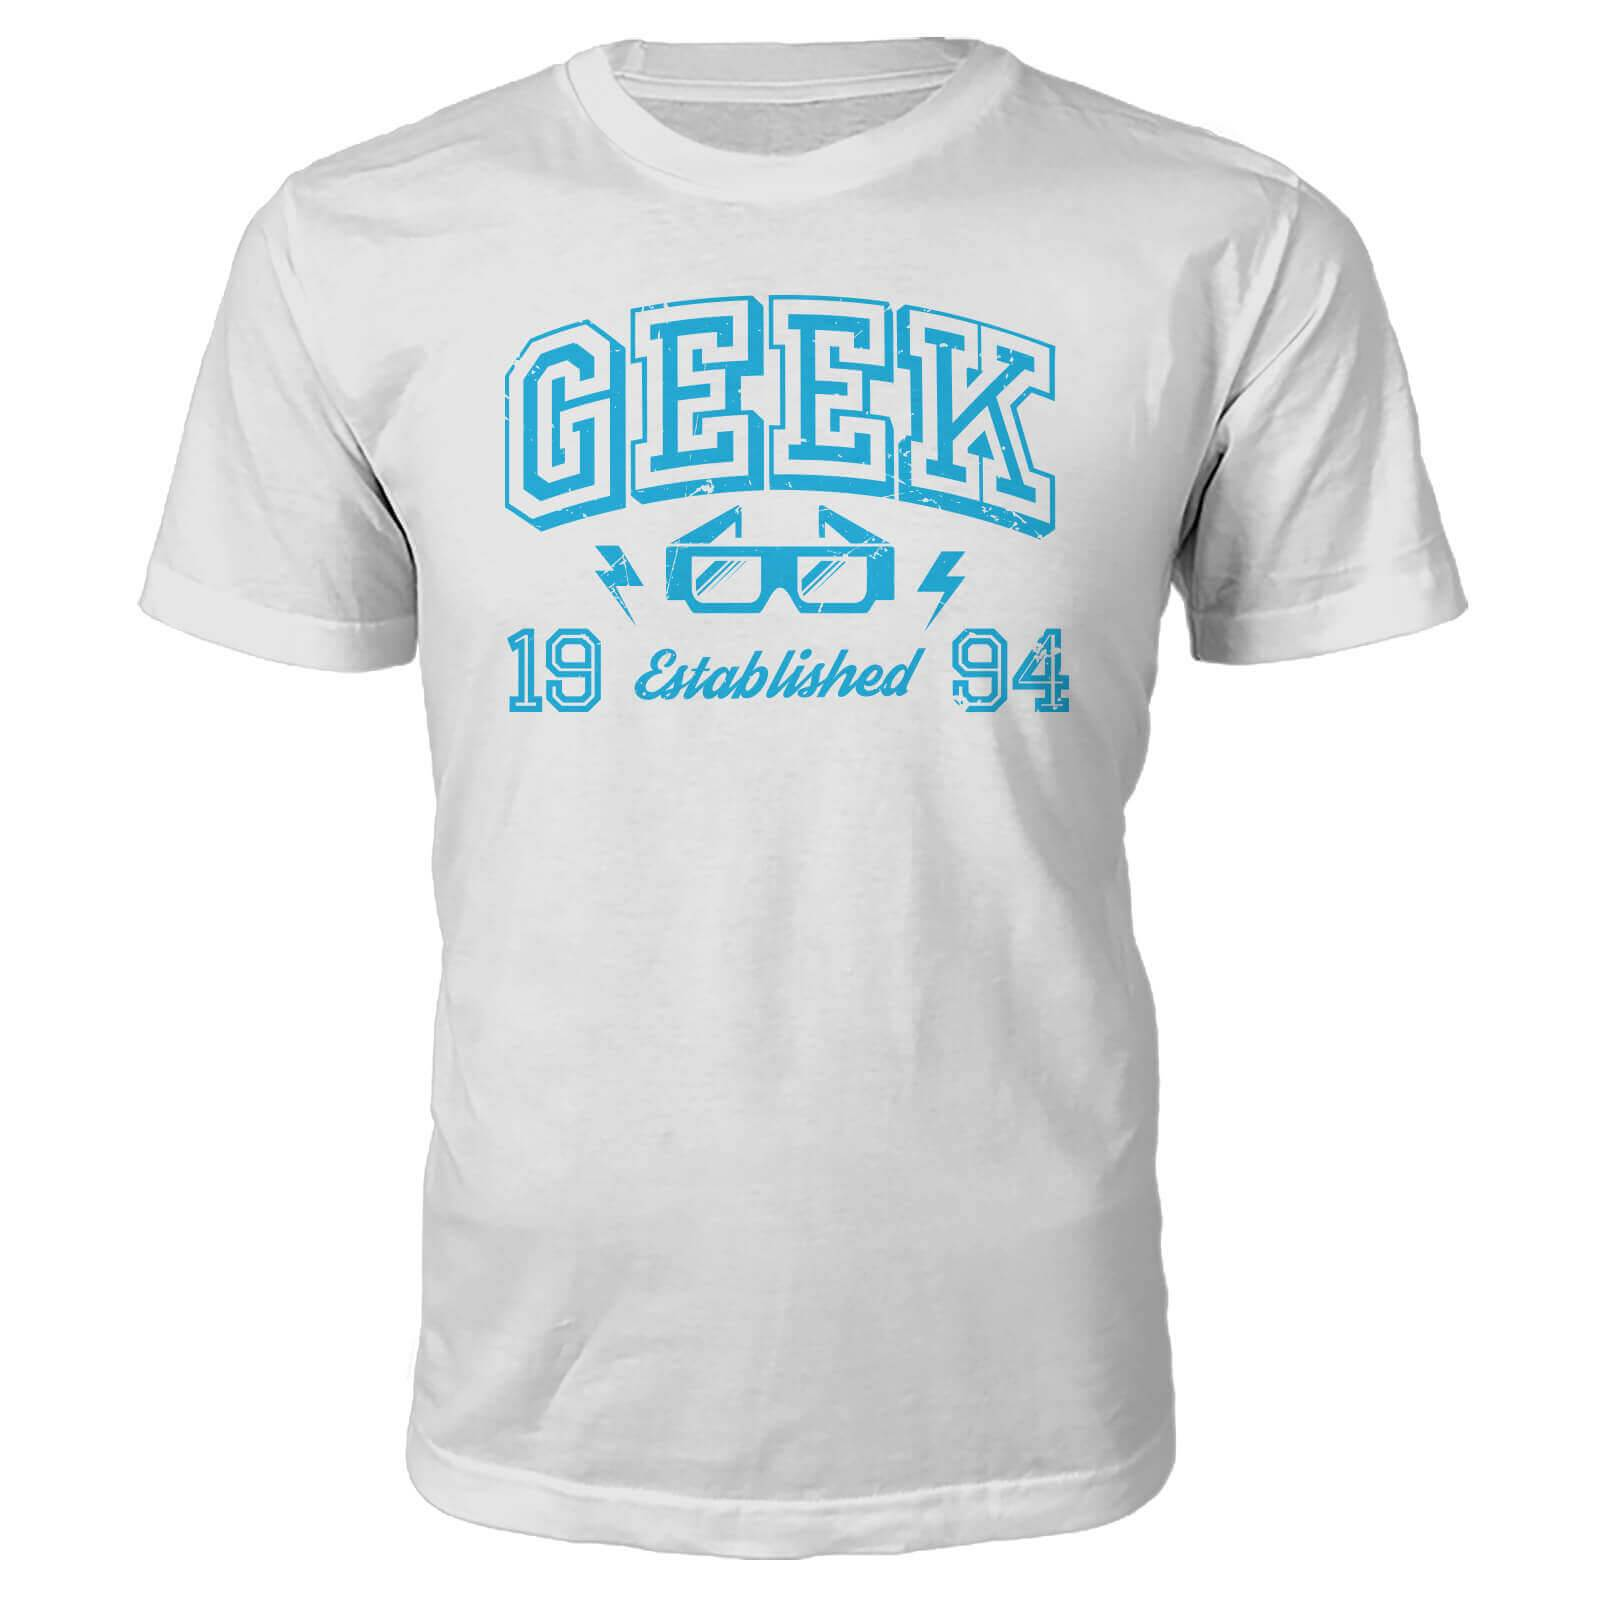 The Geek Collection Geek Established 1990's T-Shirt- White - XL - 1994